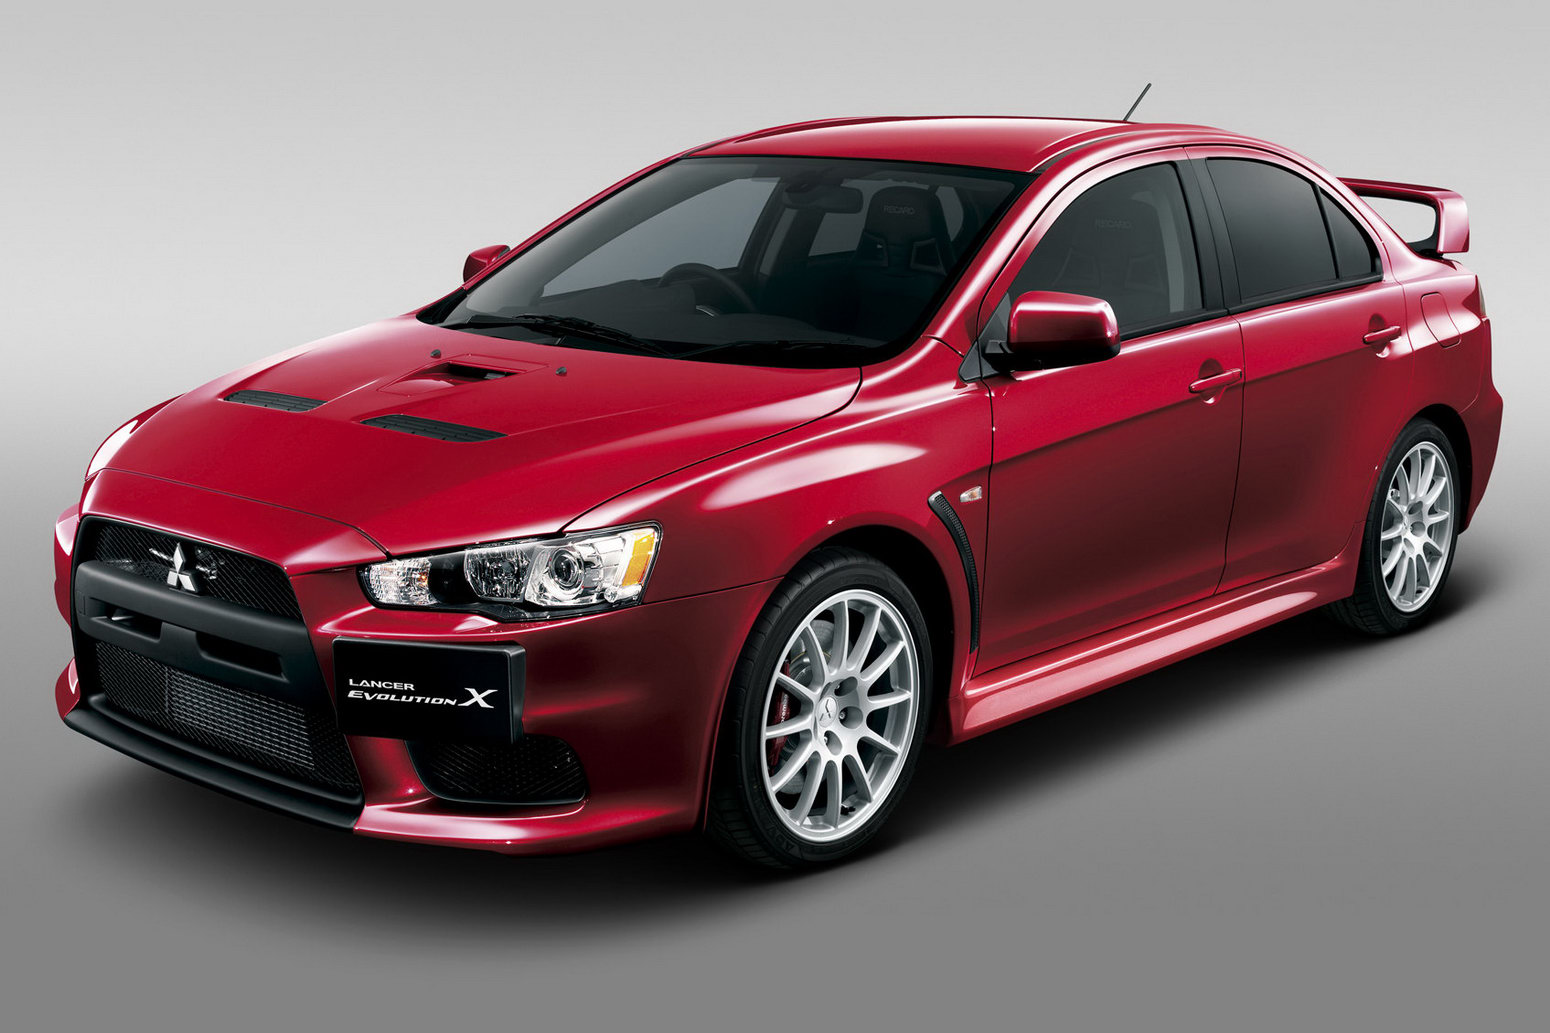 2012 Mitsubishi President Confirms Next Lancer Evo 2012 MODEL LANCER EVO FROM MITSUBISHI